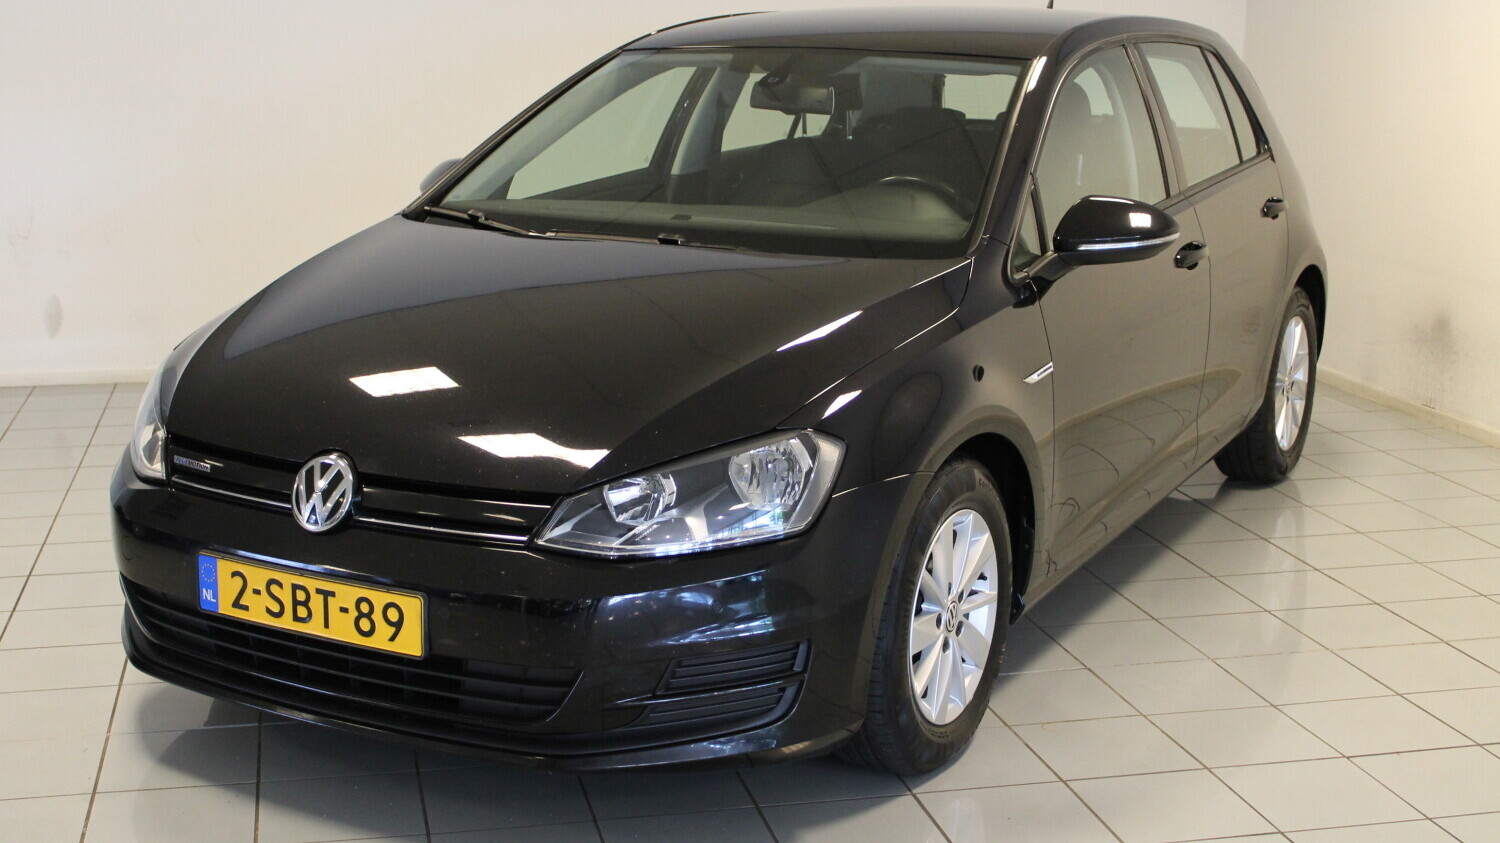 Volkswagen Golf Hatchback 2013 2-SBT-89 1